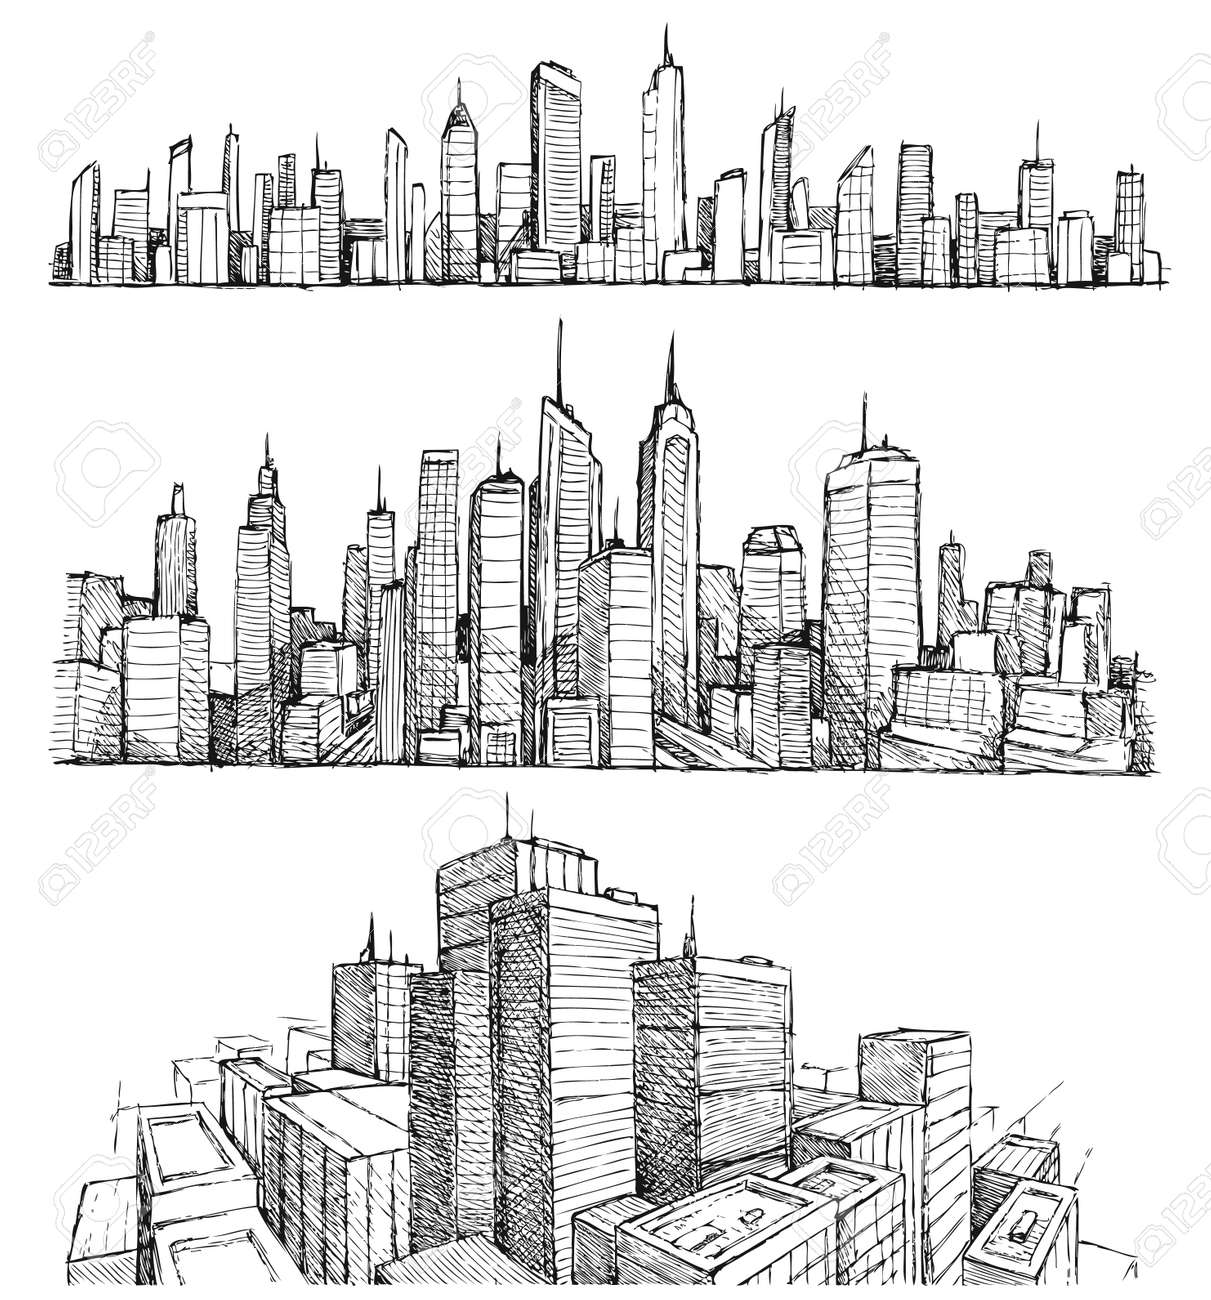 Hand drawn big cities cityscapes and buildings - 41235097